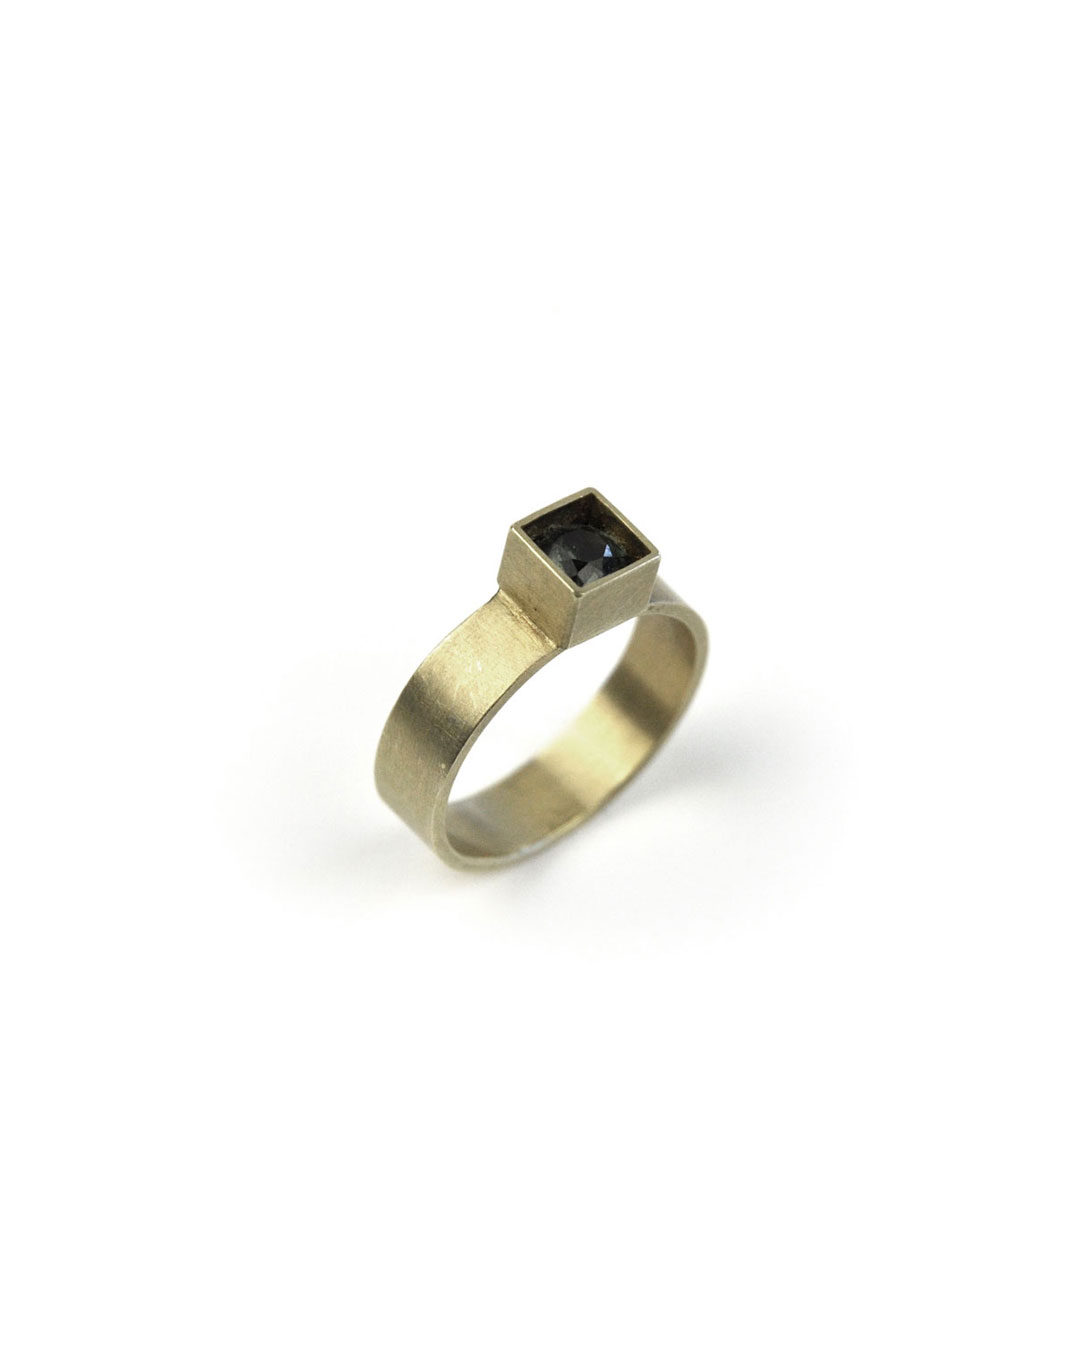 Herman Hermsen, untitled, 2005, ring; 14ct gold, synthetic stone, 24 x 20 x 5 mm, €490